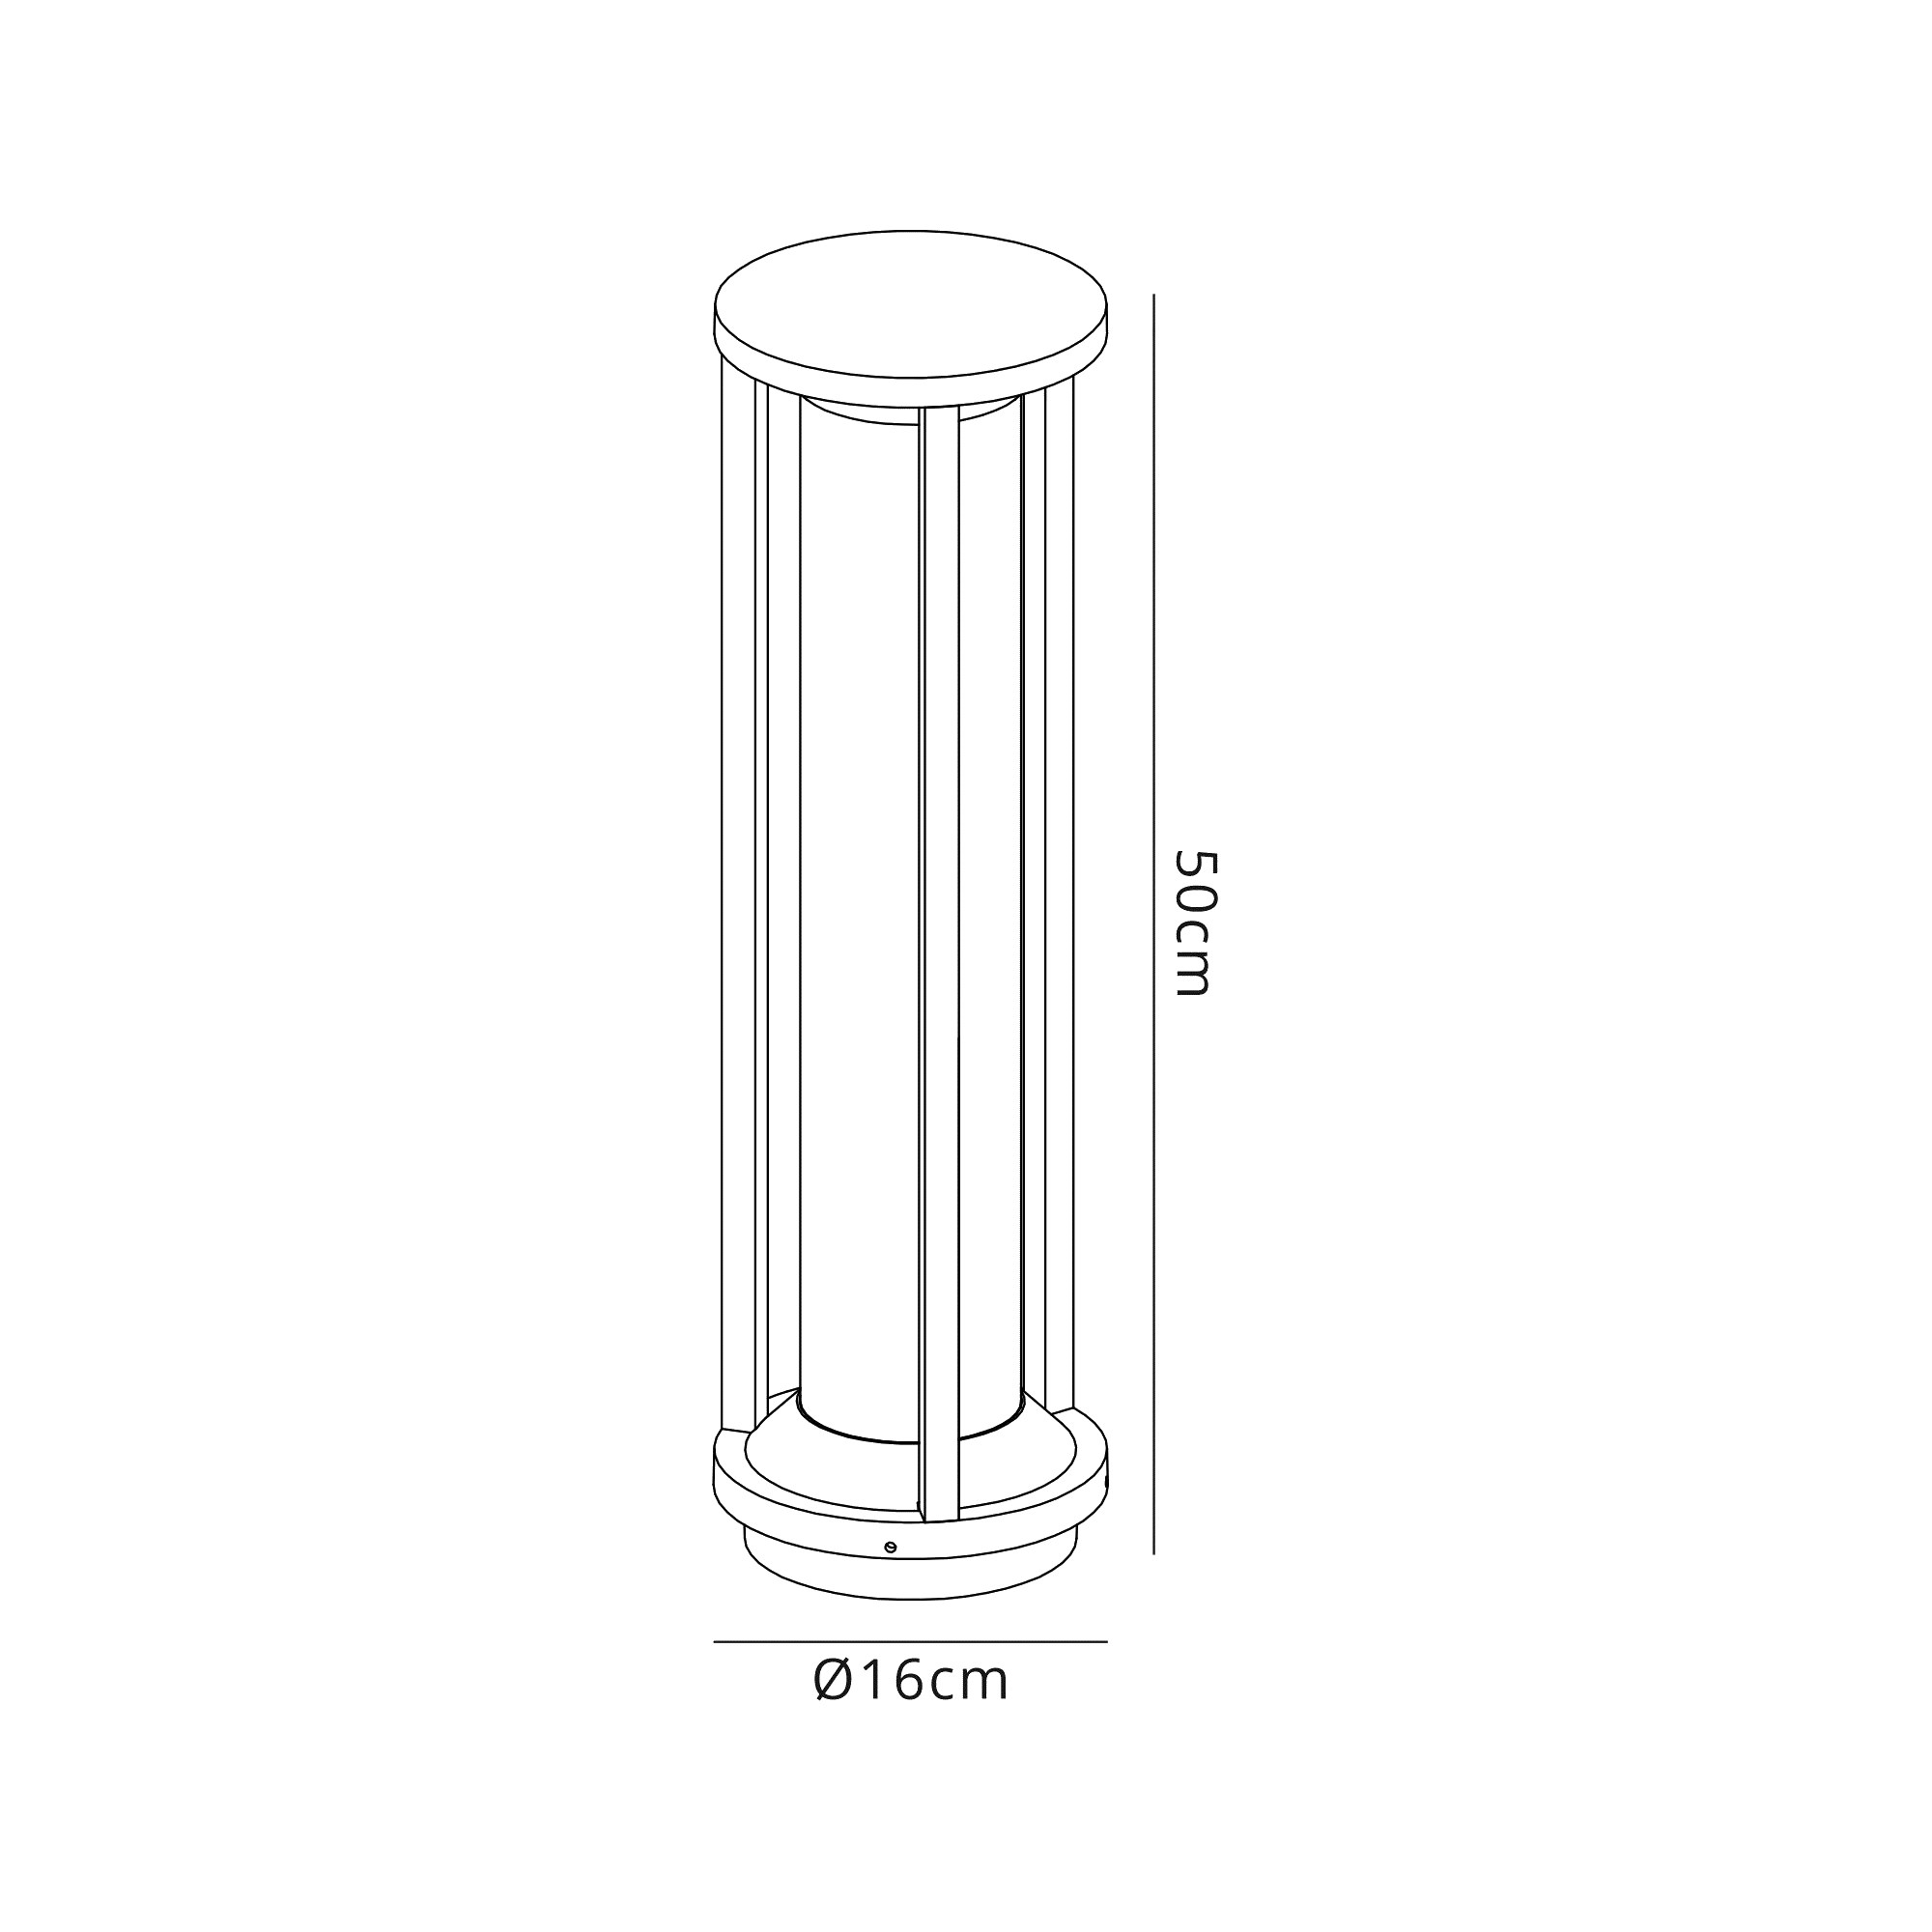 Post Lamp Large, 1 x E27, IP65, Anthracite, 2yrs Warranty